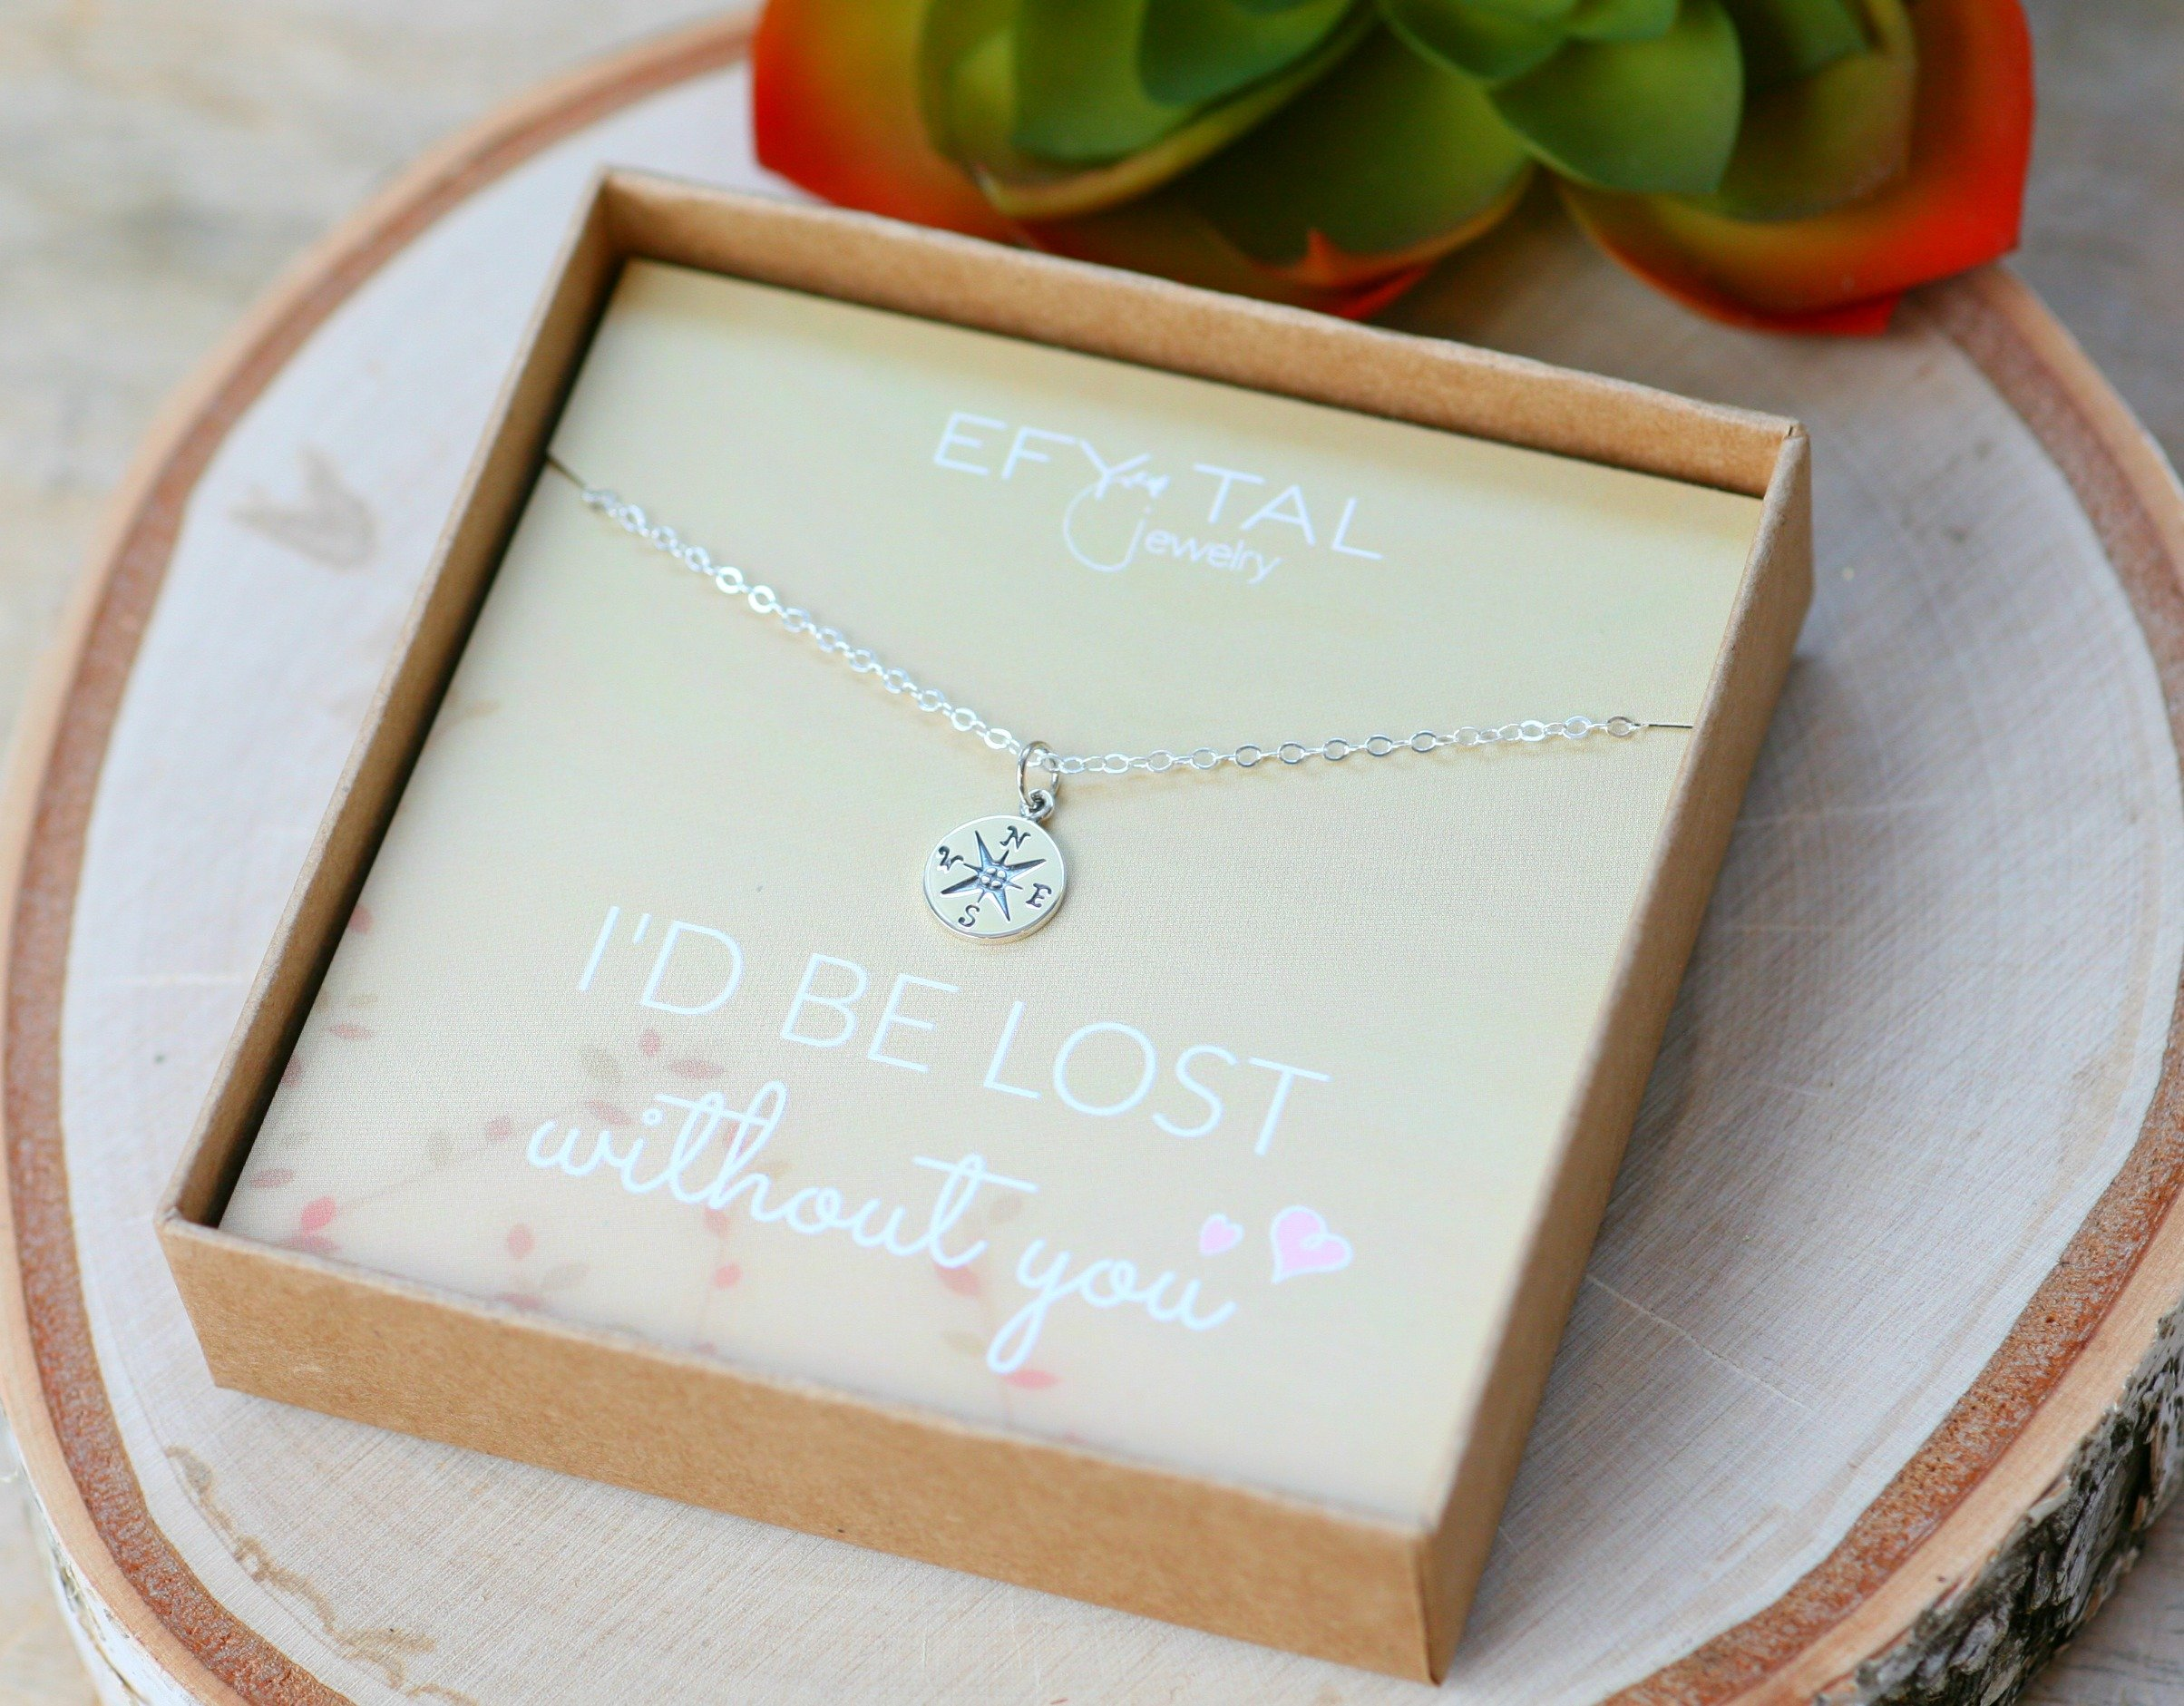 Necklace Gift for Girlfriend/Wife, Sterling Silver Cute I Love You Compass Heart Jewelry for Her, Valentines Day by Efy Tal Jewelry (Image #4)